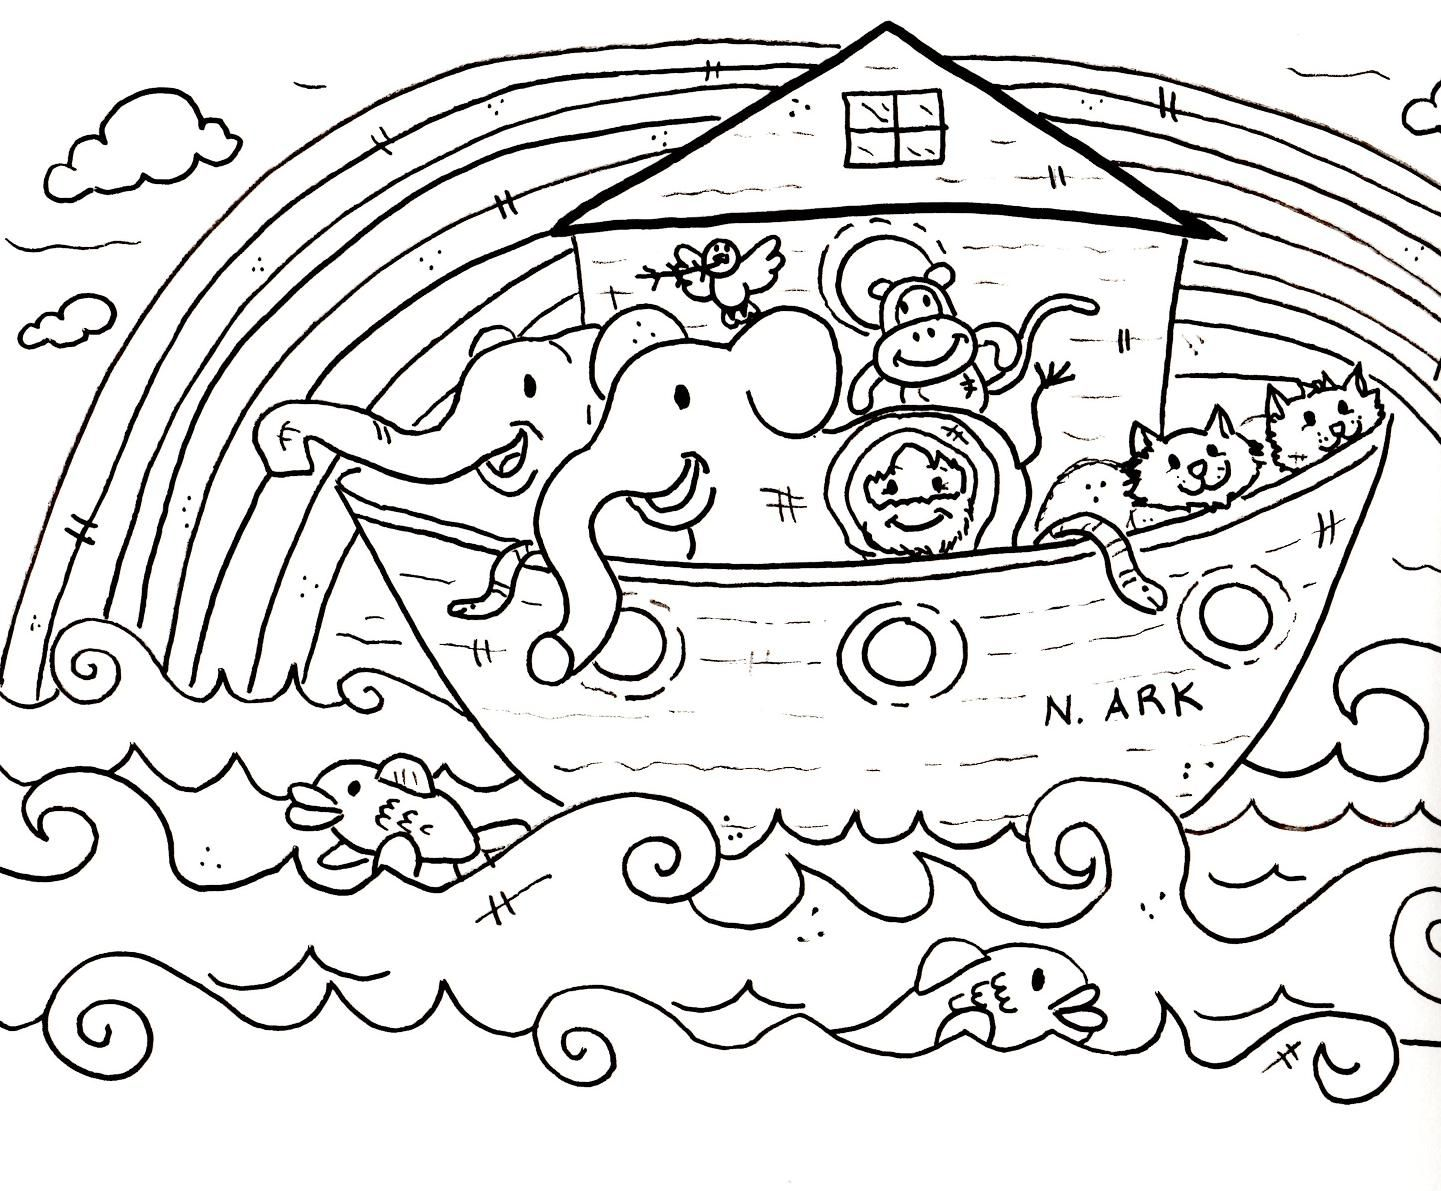 Printable coloring pages for 12 year olds - Children Coloring Pages For Church Sunday School Coloring Pages Coloring Pages